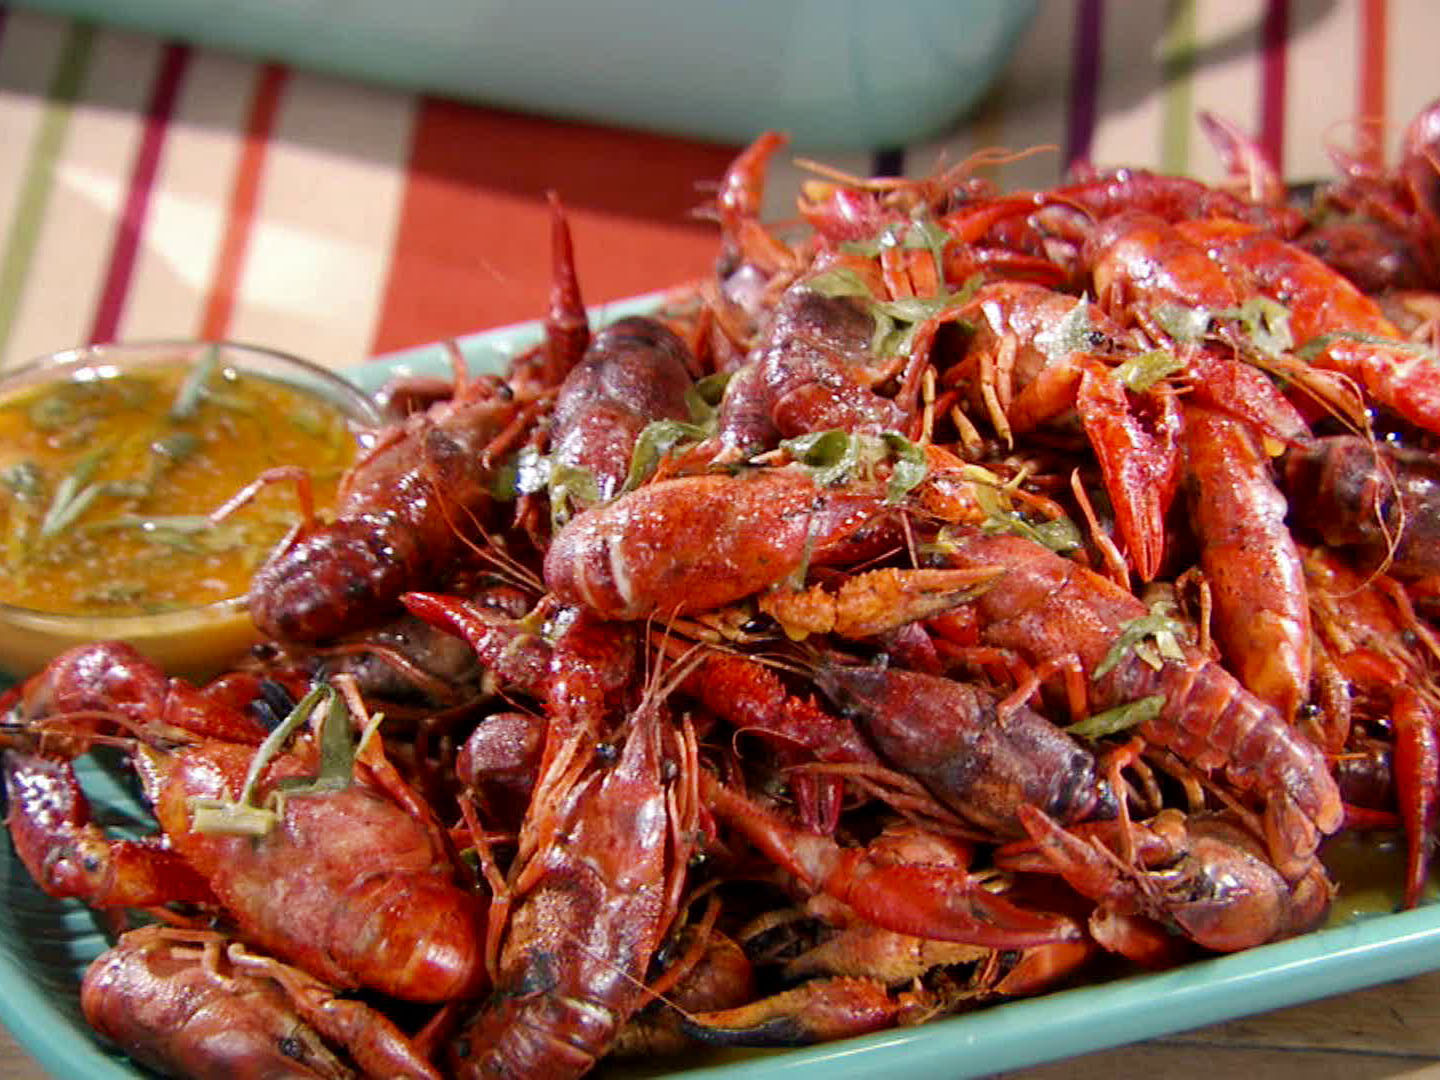 Crawfish Dish on a Tray